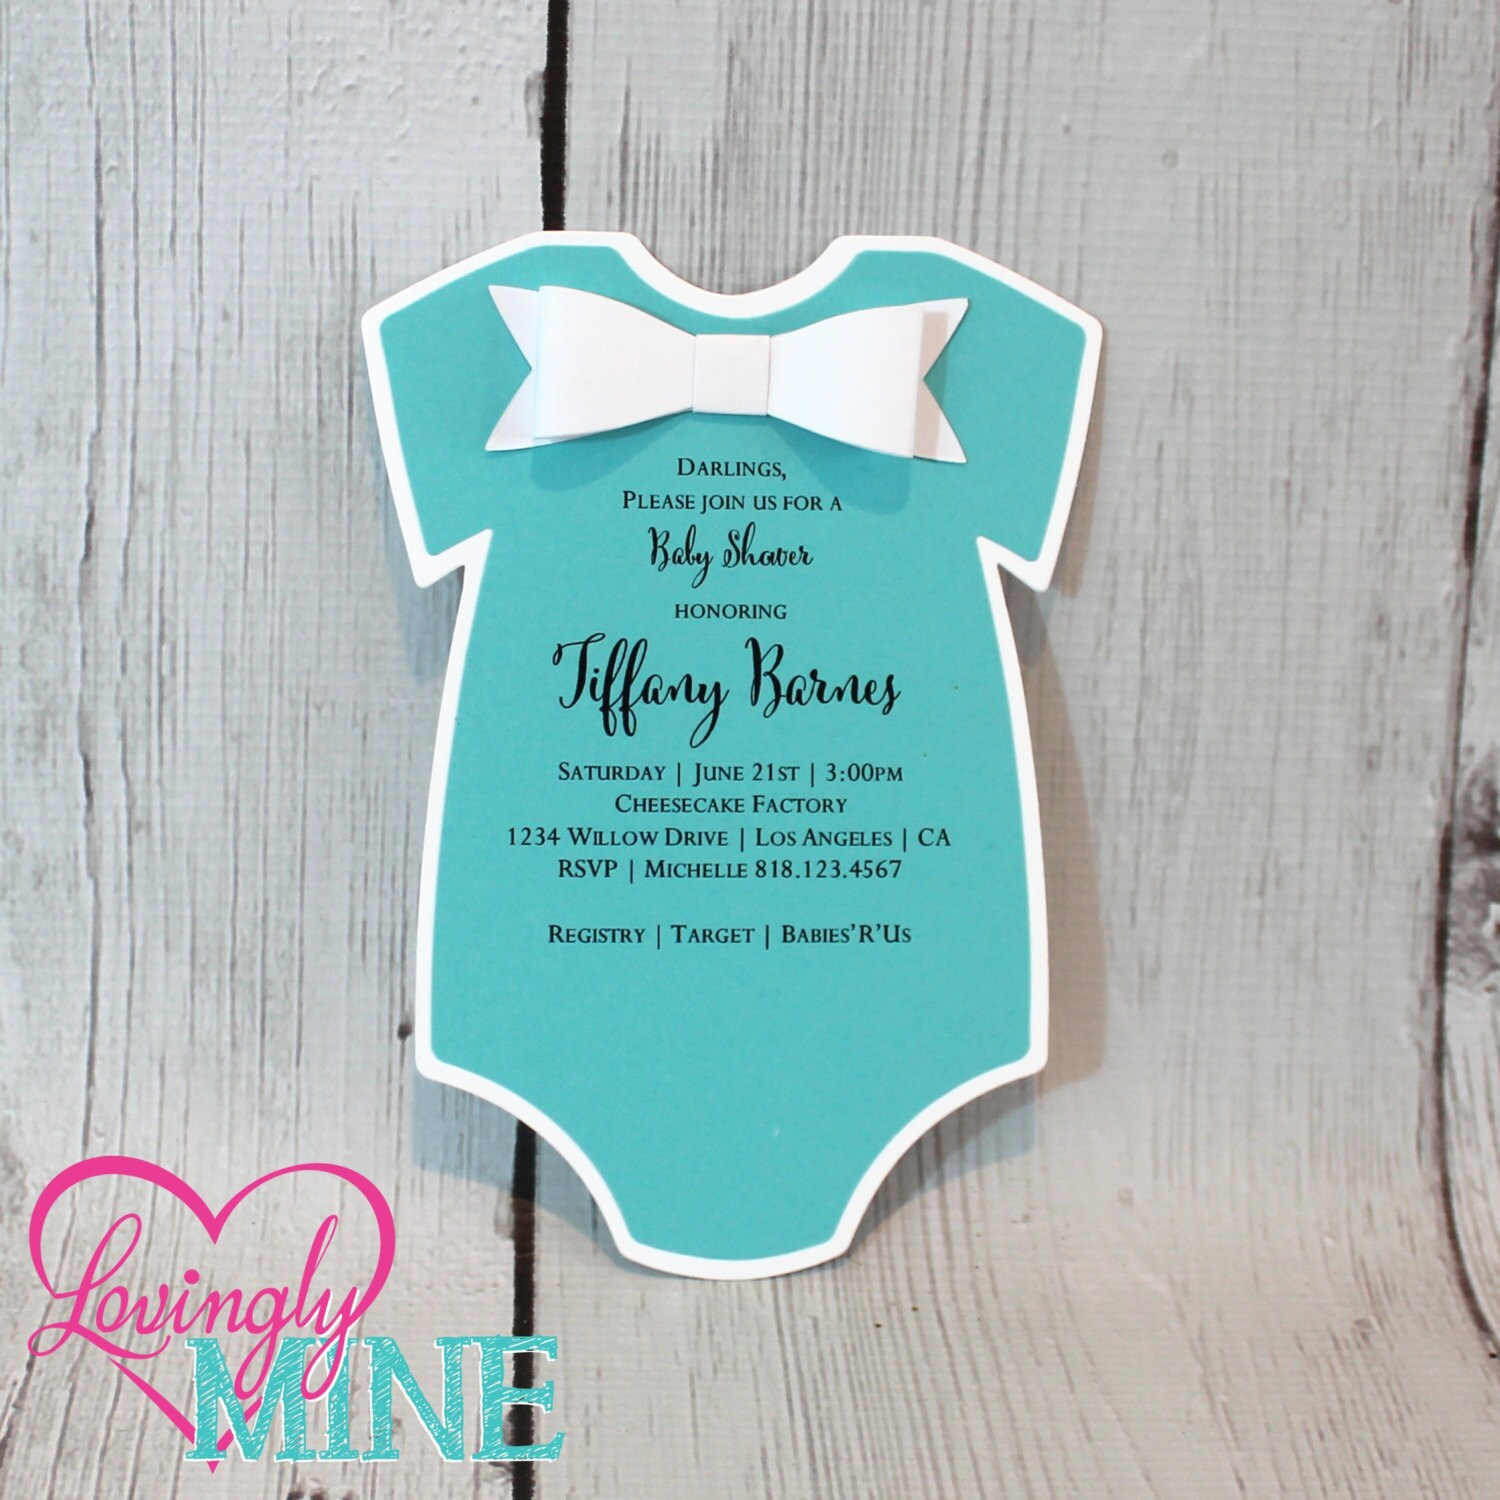 Baby Shower Invitations Set of 10 One Piece Body Suit with